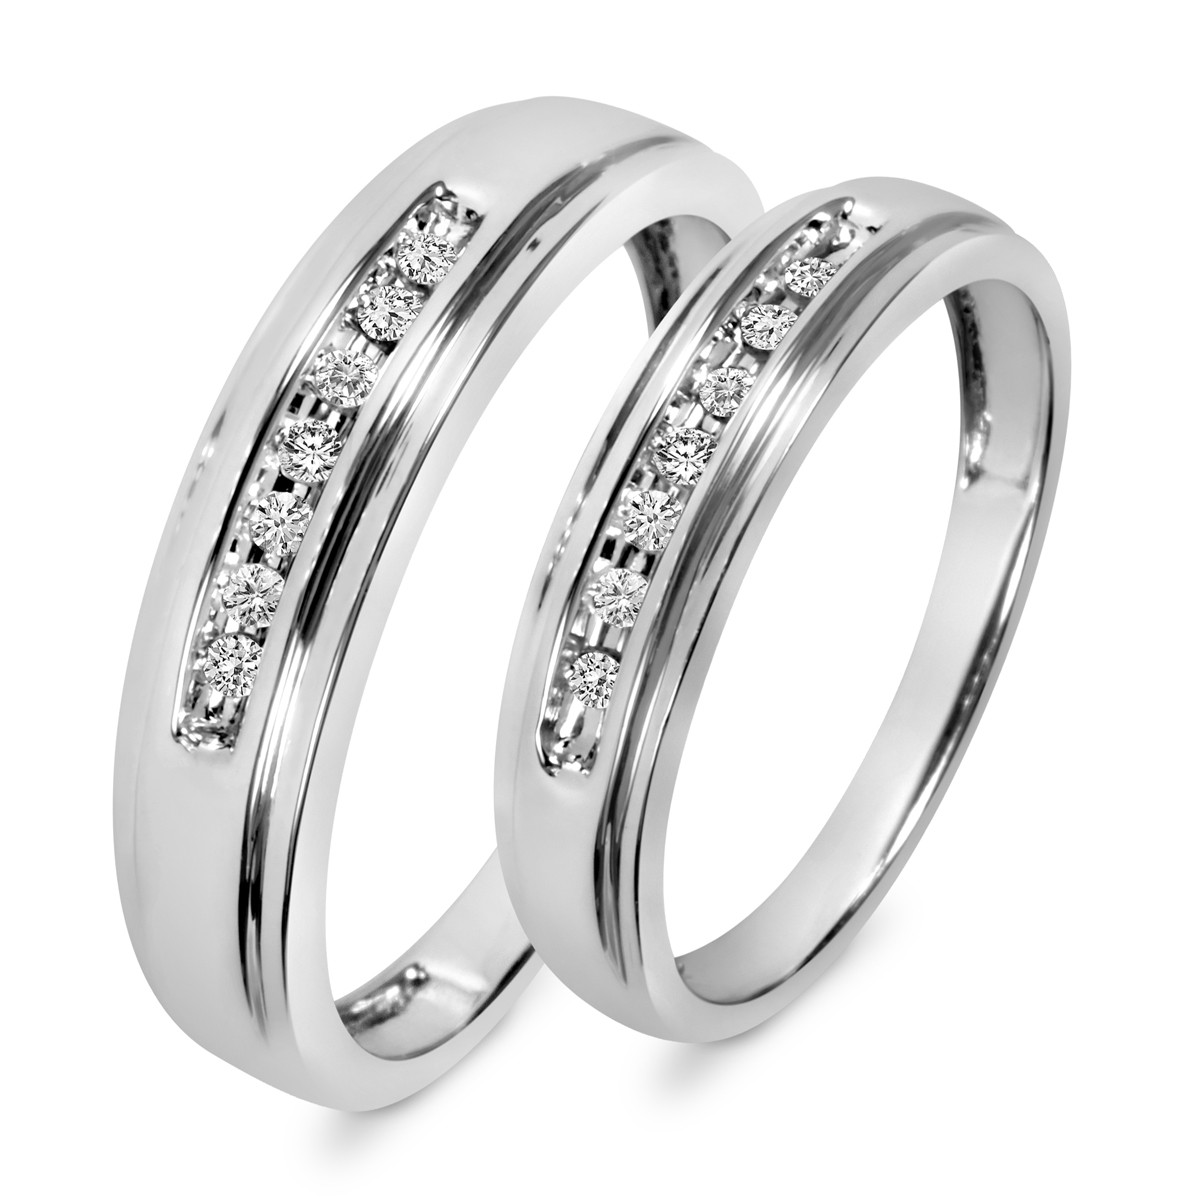 Wedding Band 10k White Gold: 1/6 Carat T.W. Diamond His And Hers Wedding Band Set 10K